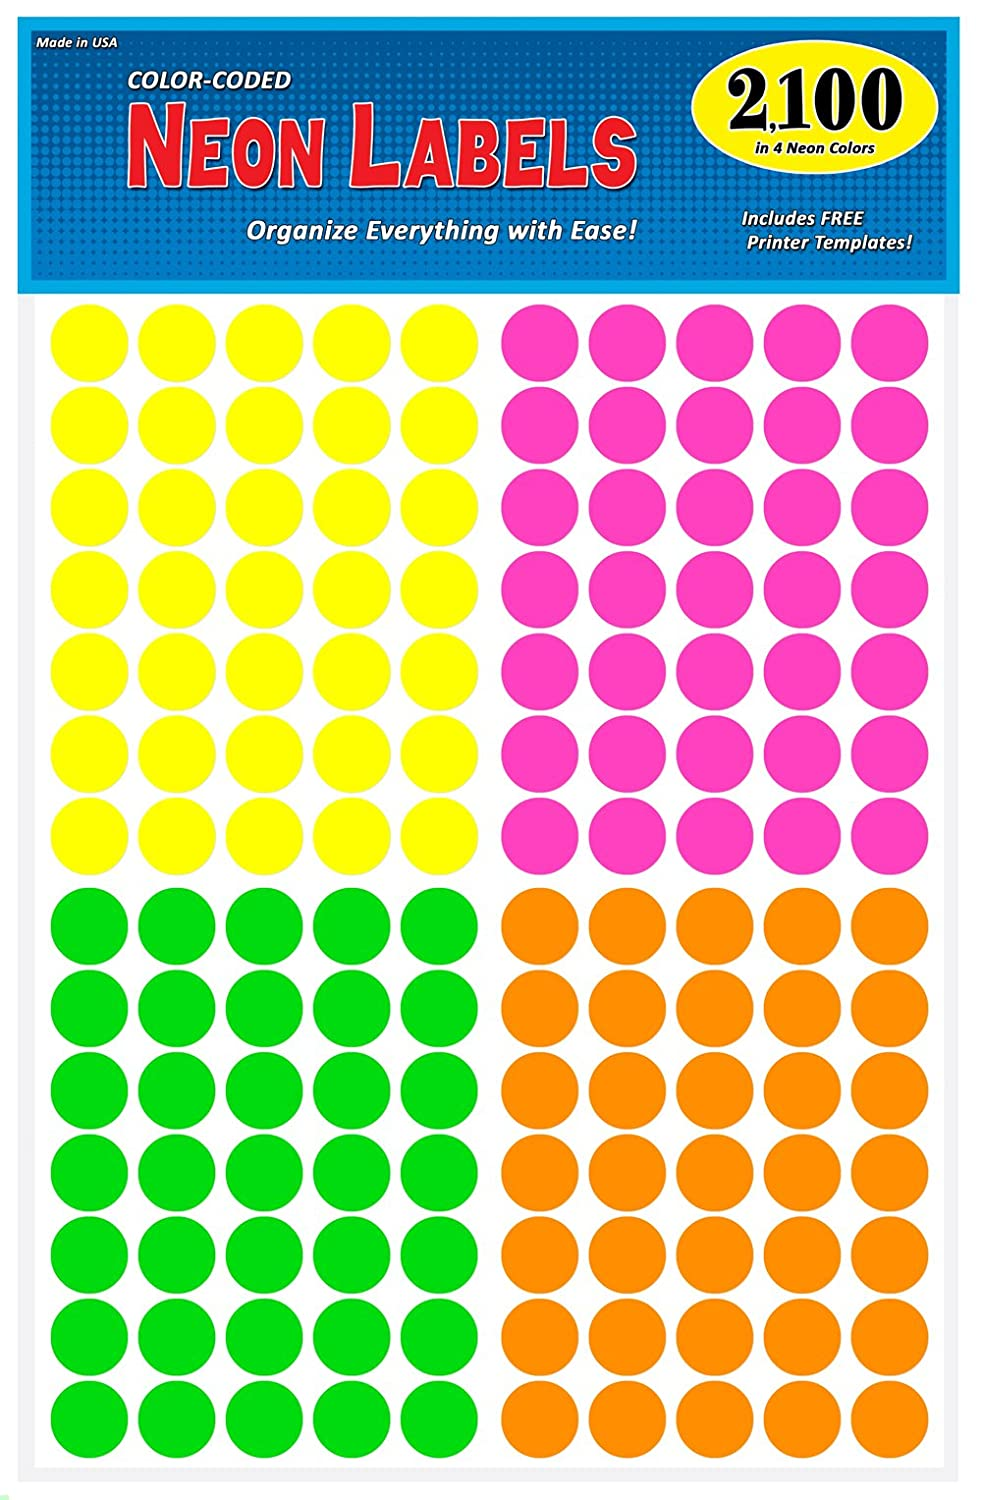 Amazon Pack Of 2100 3 4 Round Color Coding Circle Dot Labels Bright Neon Multicolored Yellow Pink Green Orange 8 1 2 X 11 Sheet